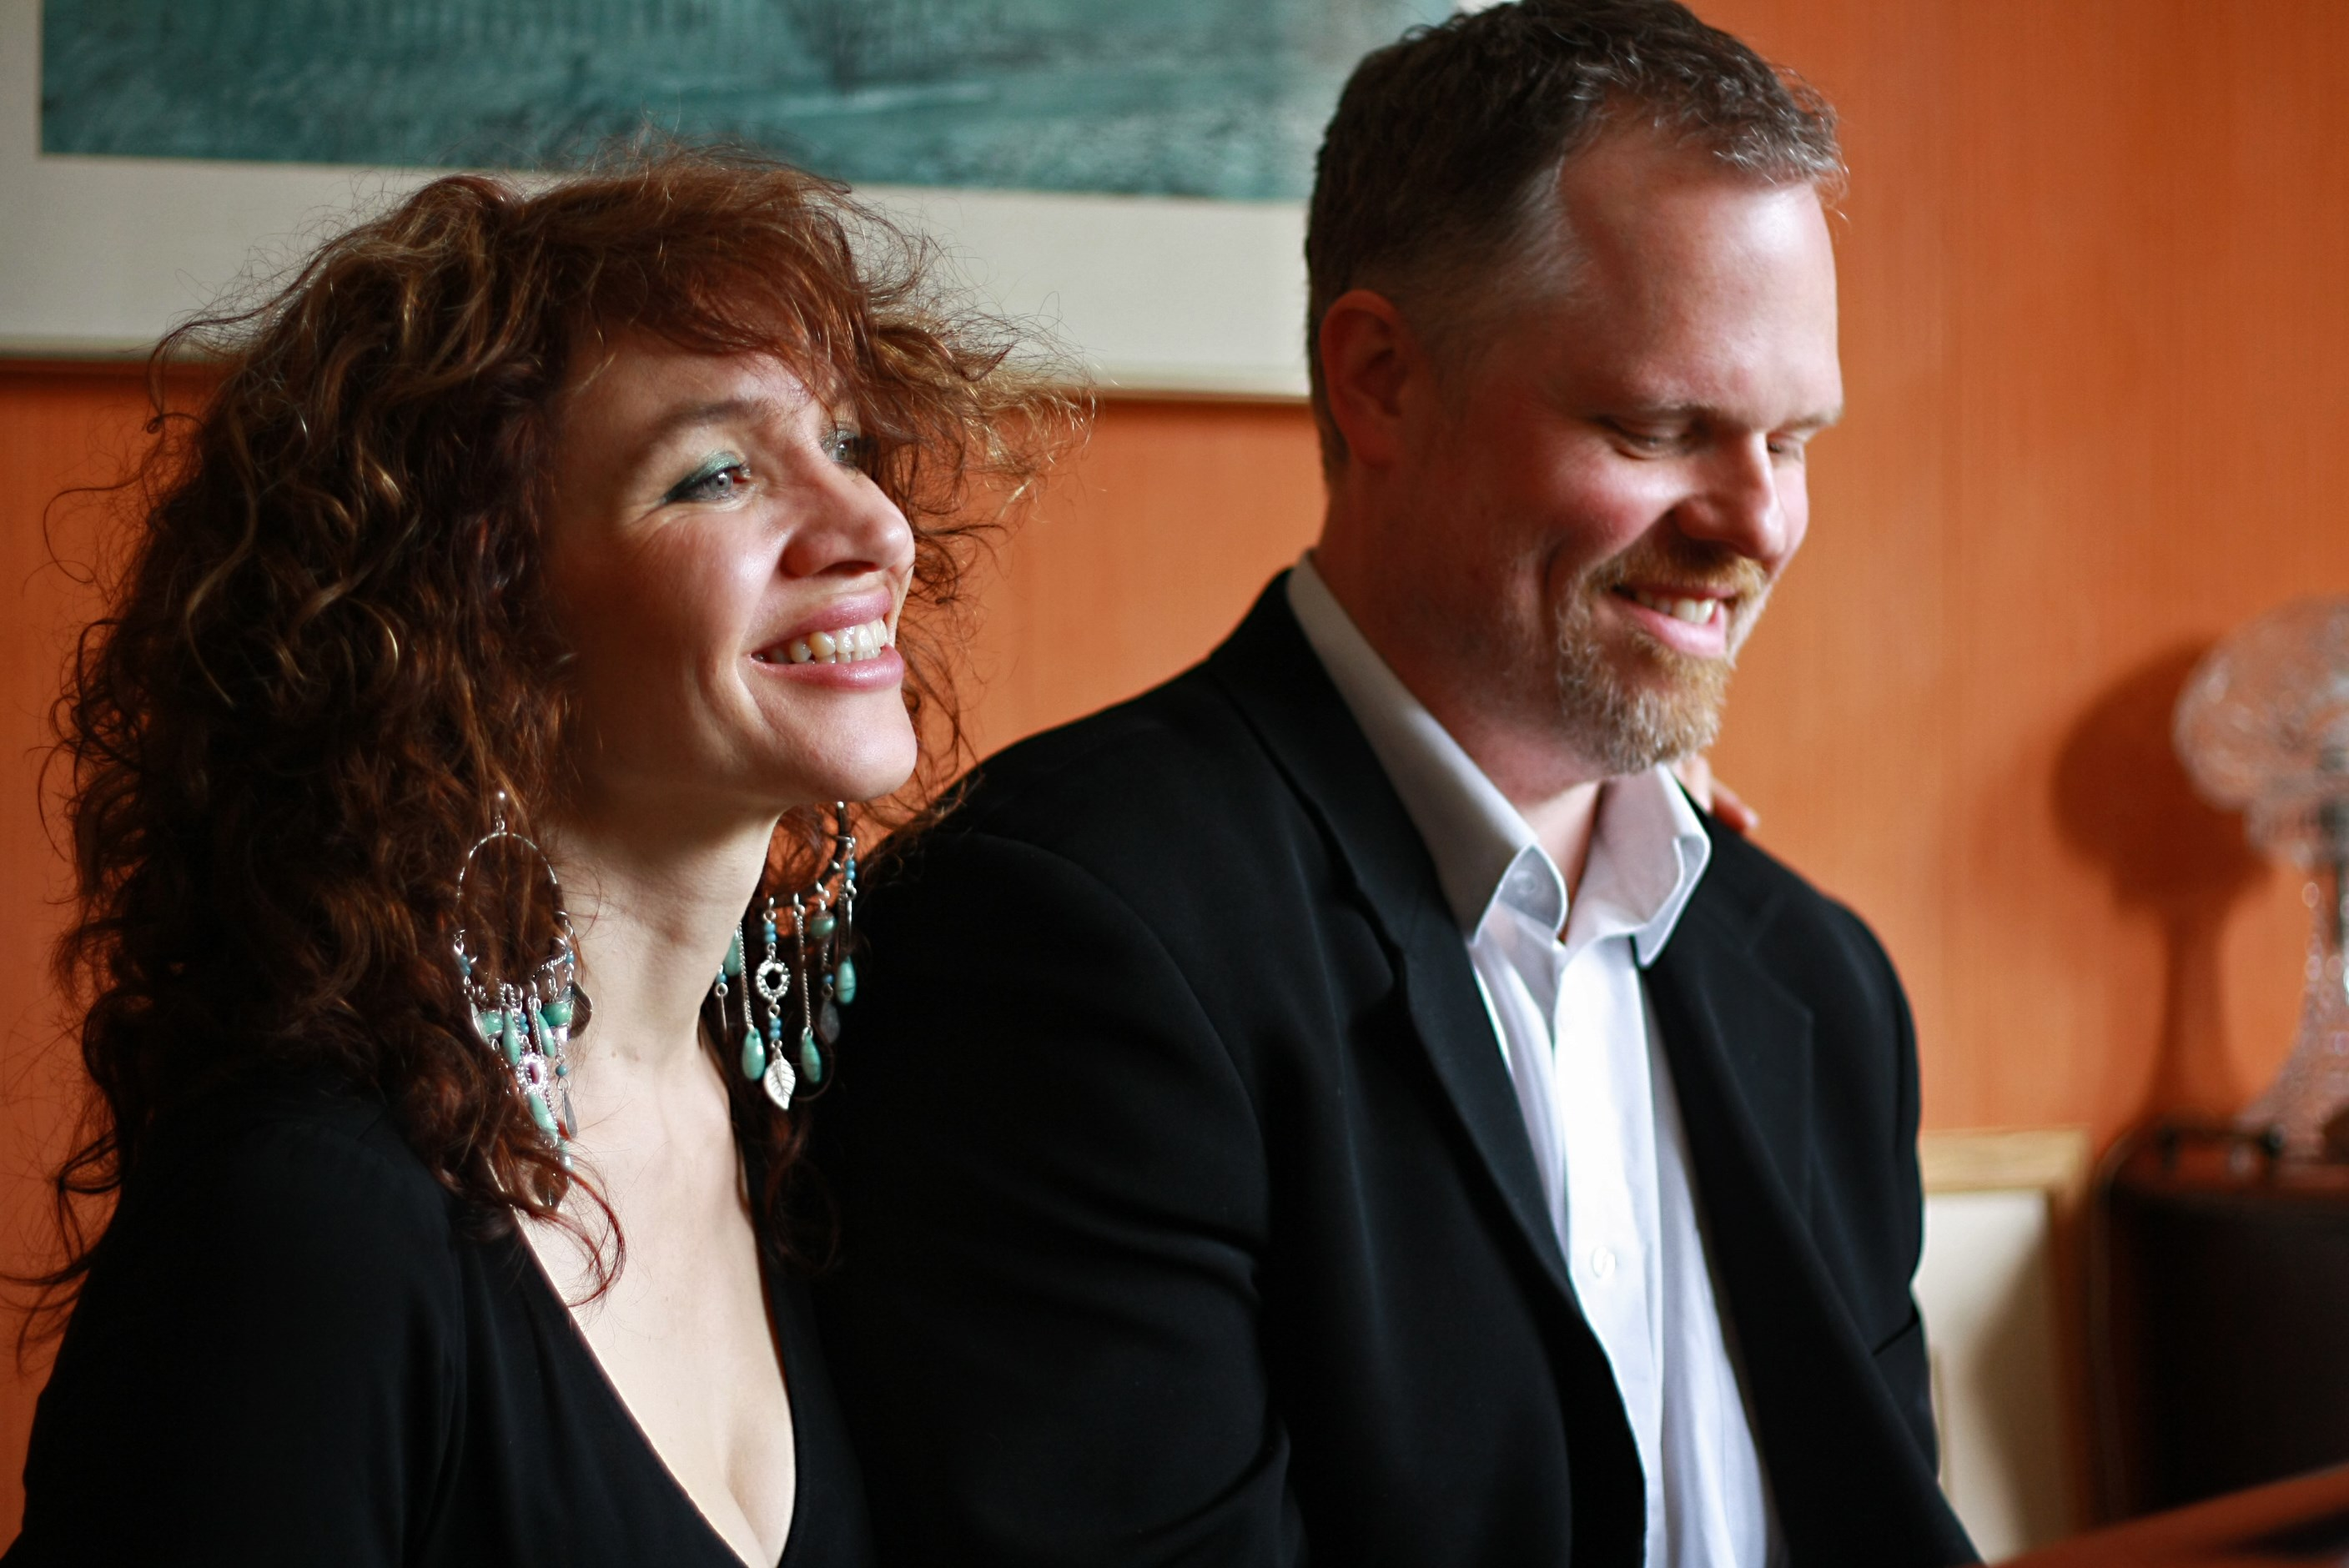 Just You, Just Me - Jacqui Dankworth & Charlie Wood